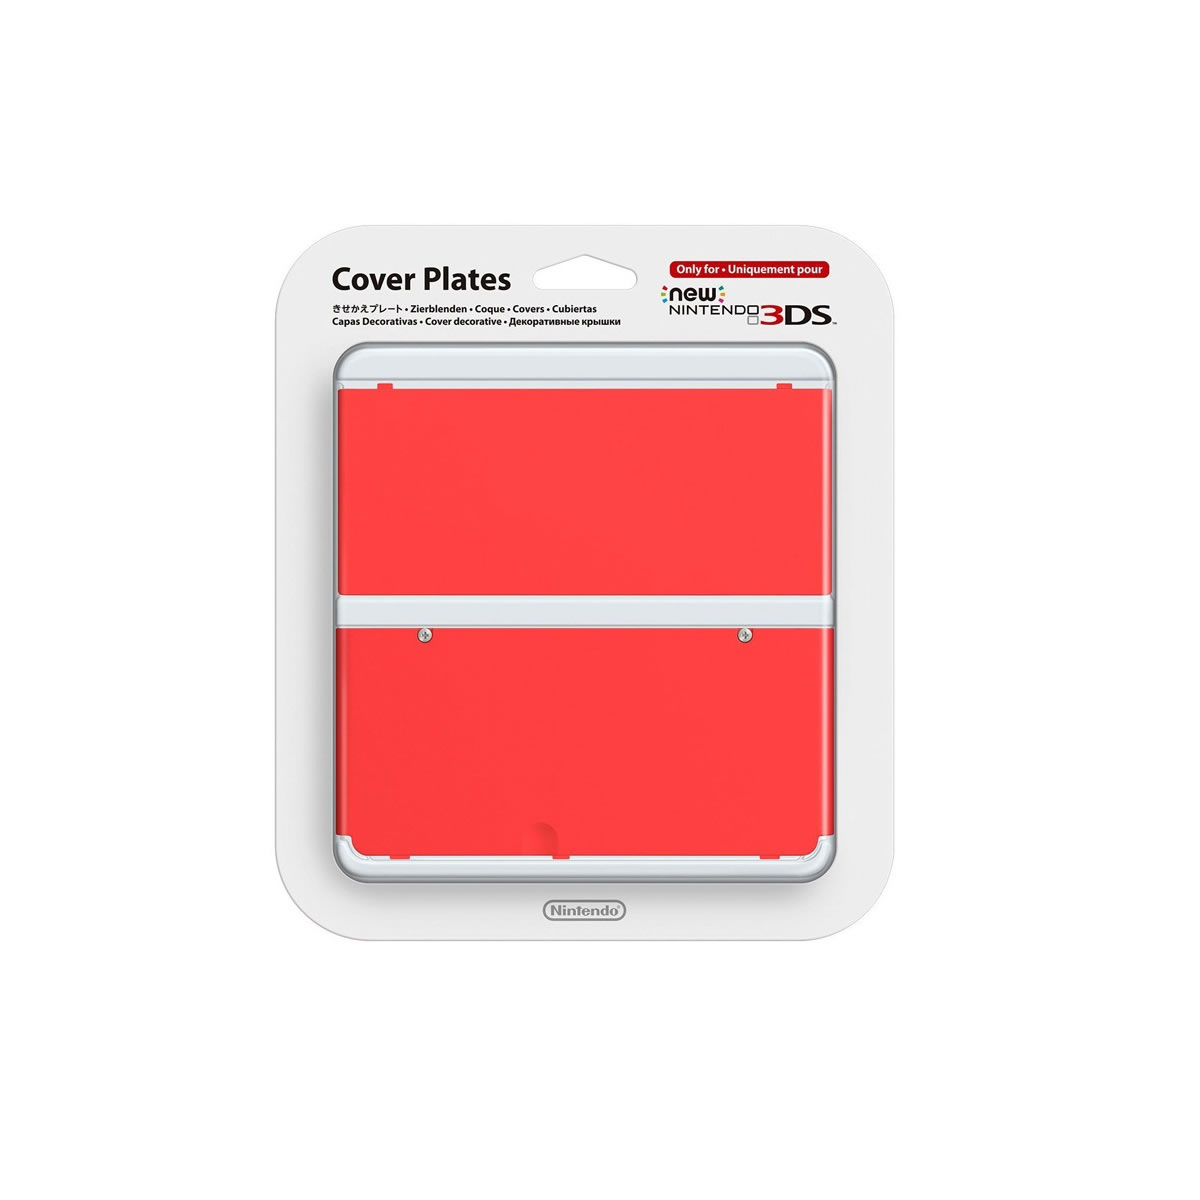 NEW NINTENDO 3DS COVERPLATE 018 Red - ΚΟΚΚΙΝΟ (New 3DS)